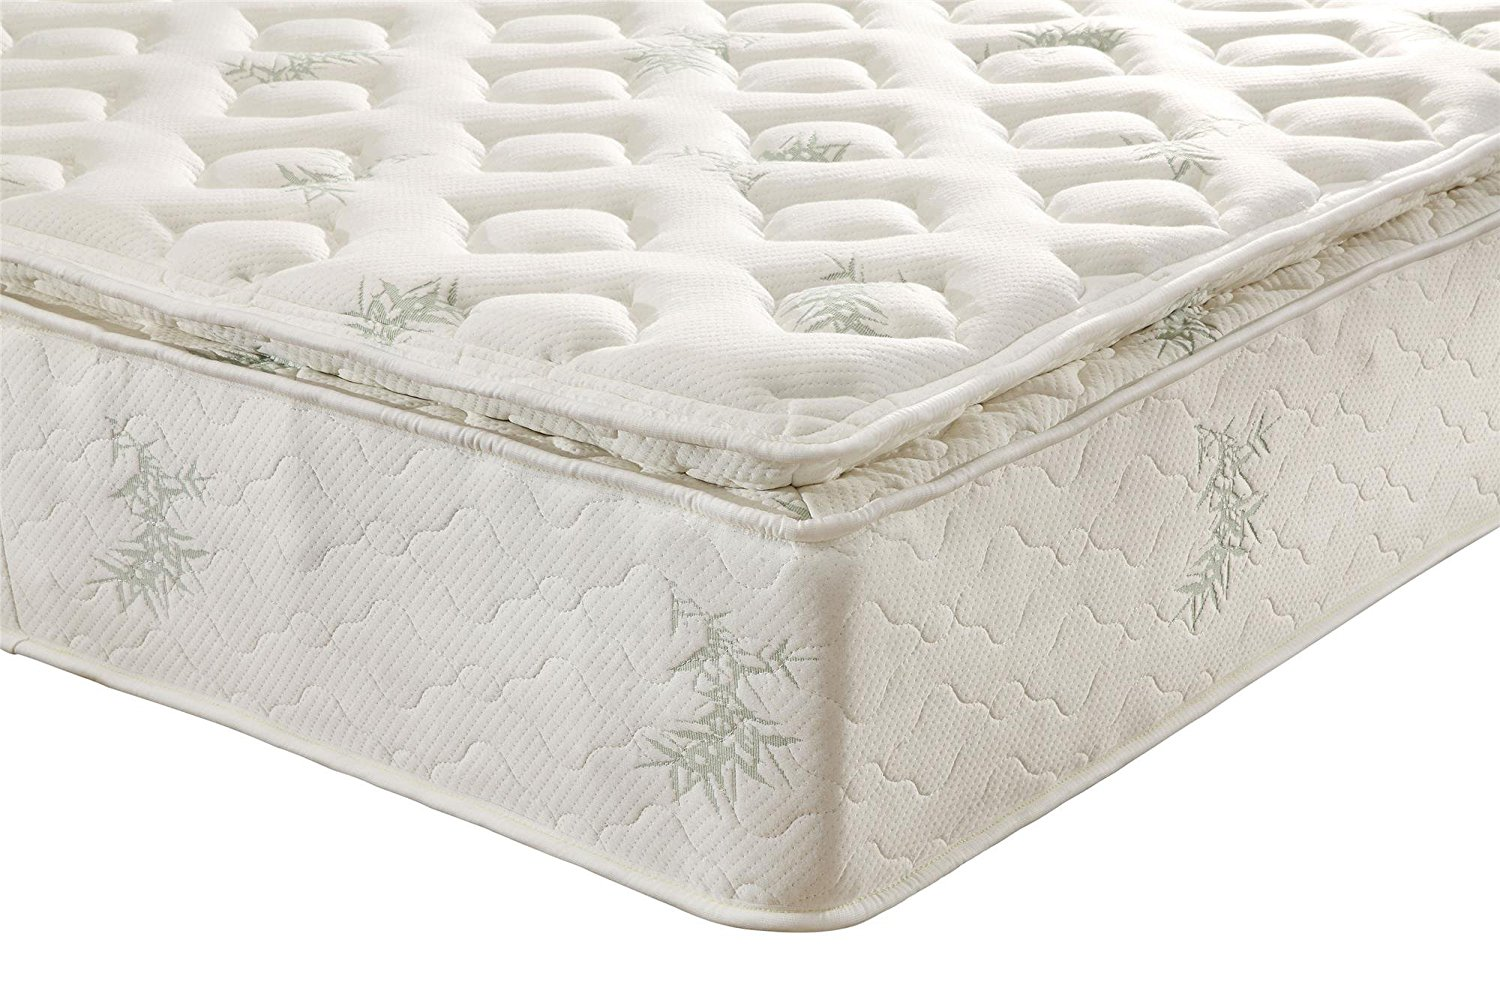 Signature 13 Inch Independently Encased Coil Mattress 13 Inch King Mattress W Boxspring